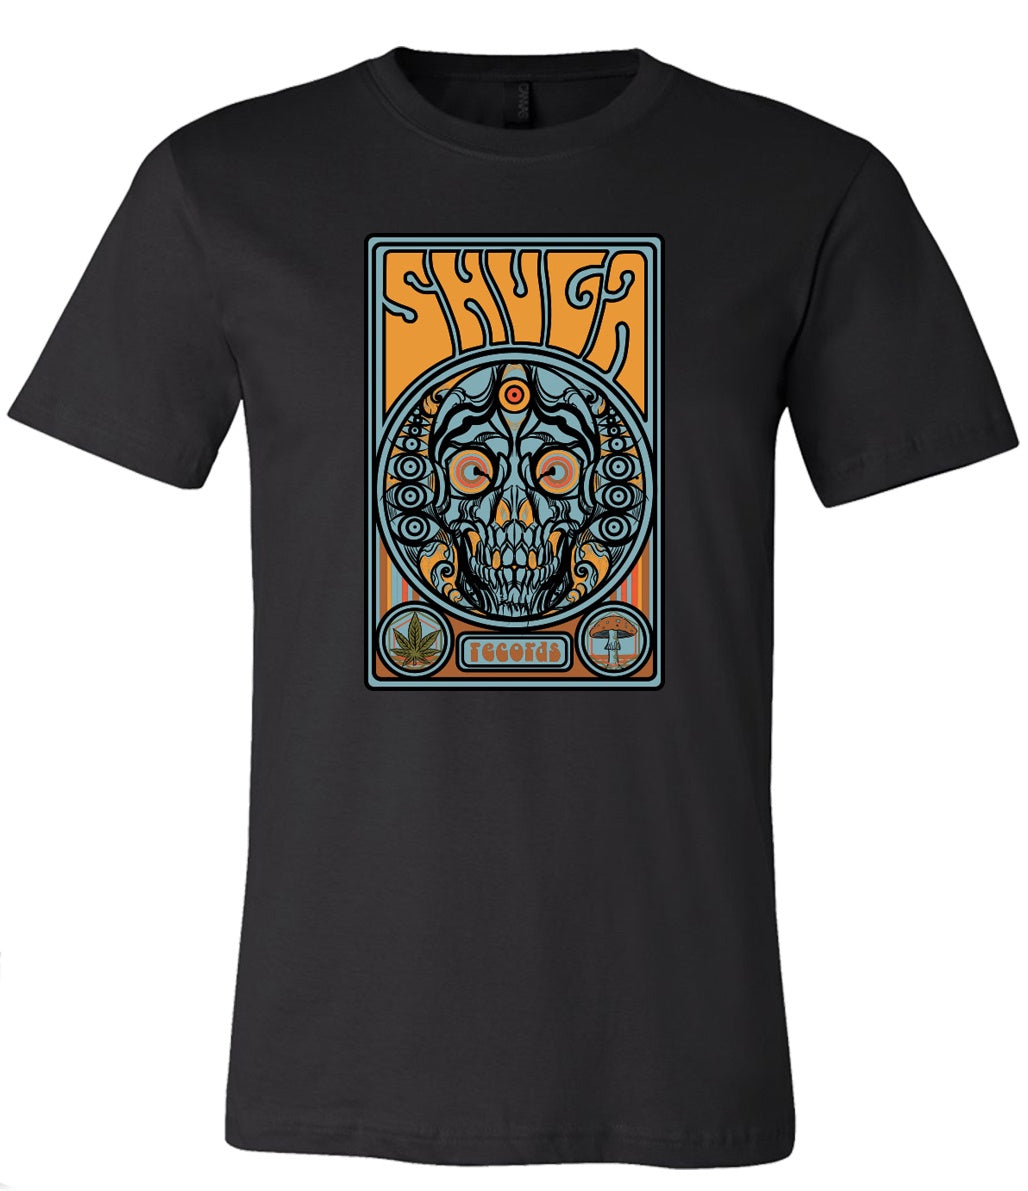 Shuga Records 'Trippy Skull' Design Black T-Shirts